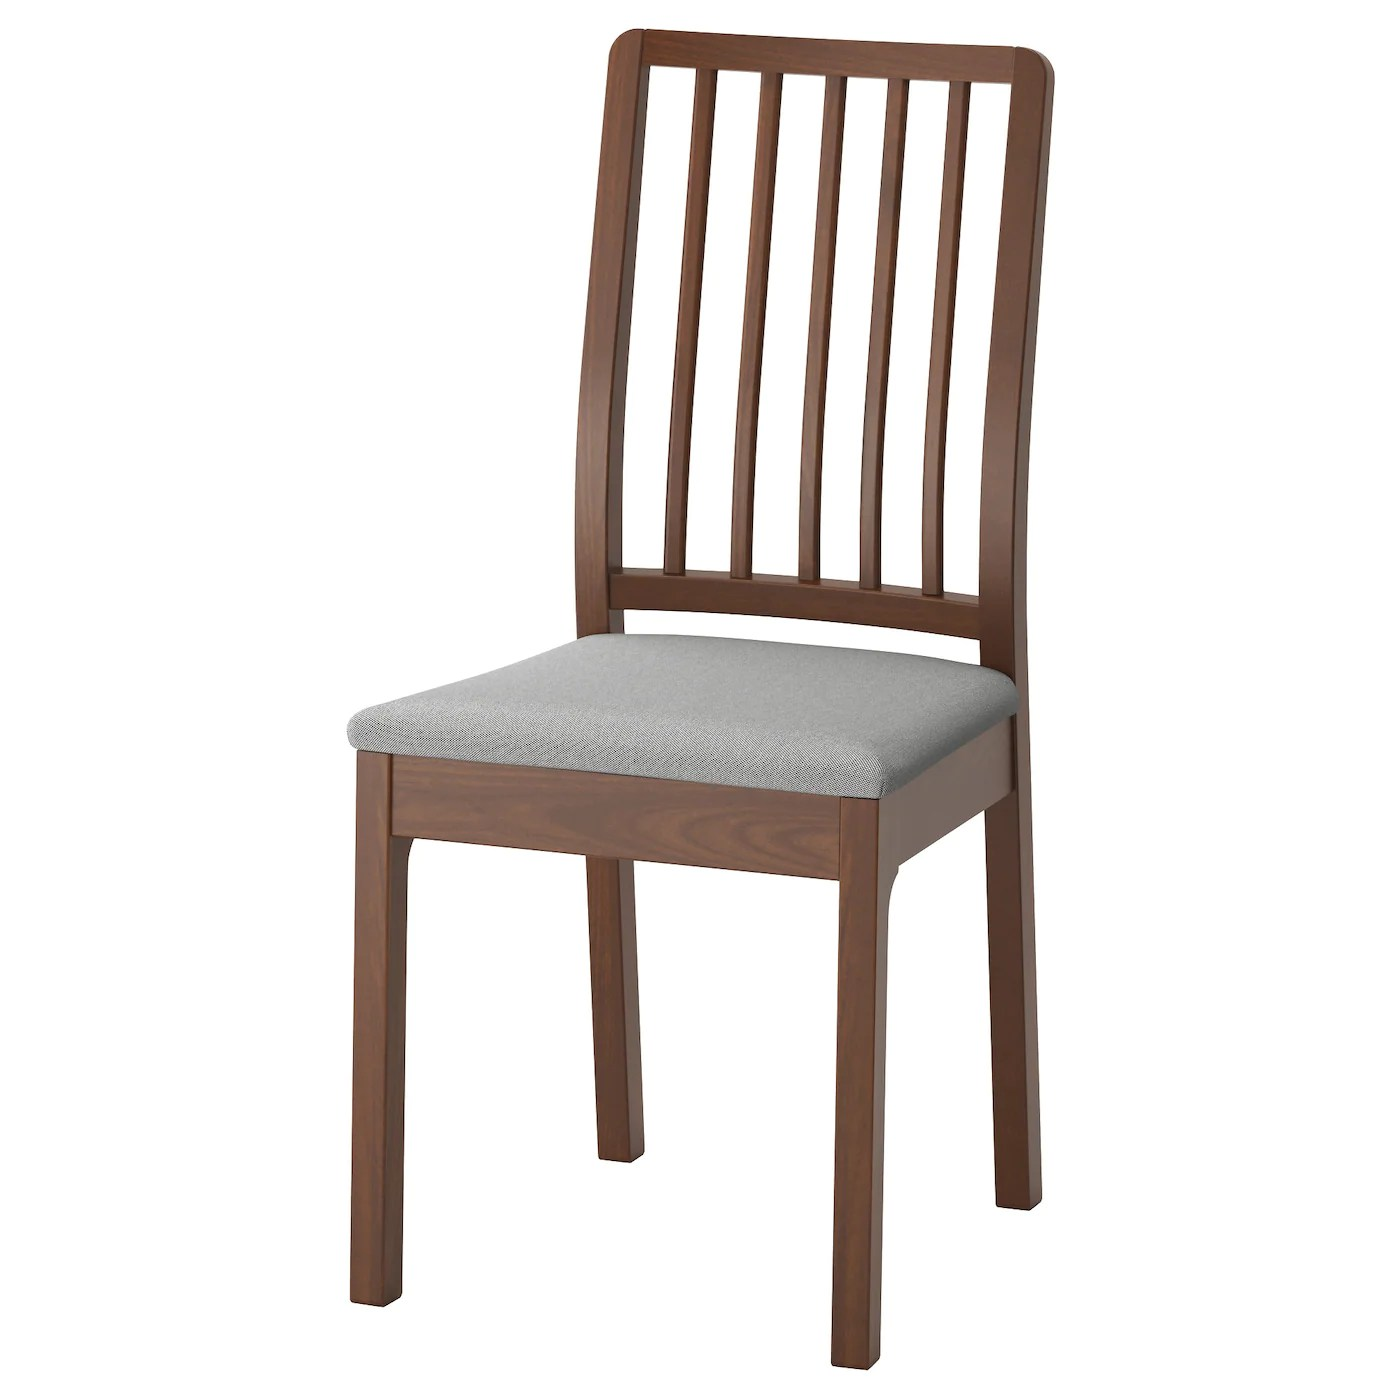 chair with light wenger orchestra ekedalen brown ramna grey ikea